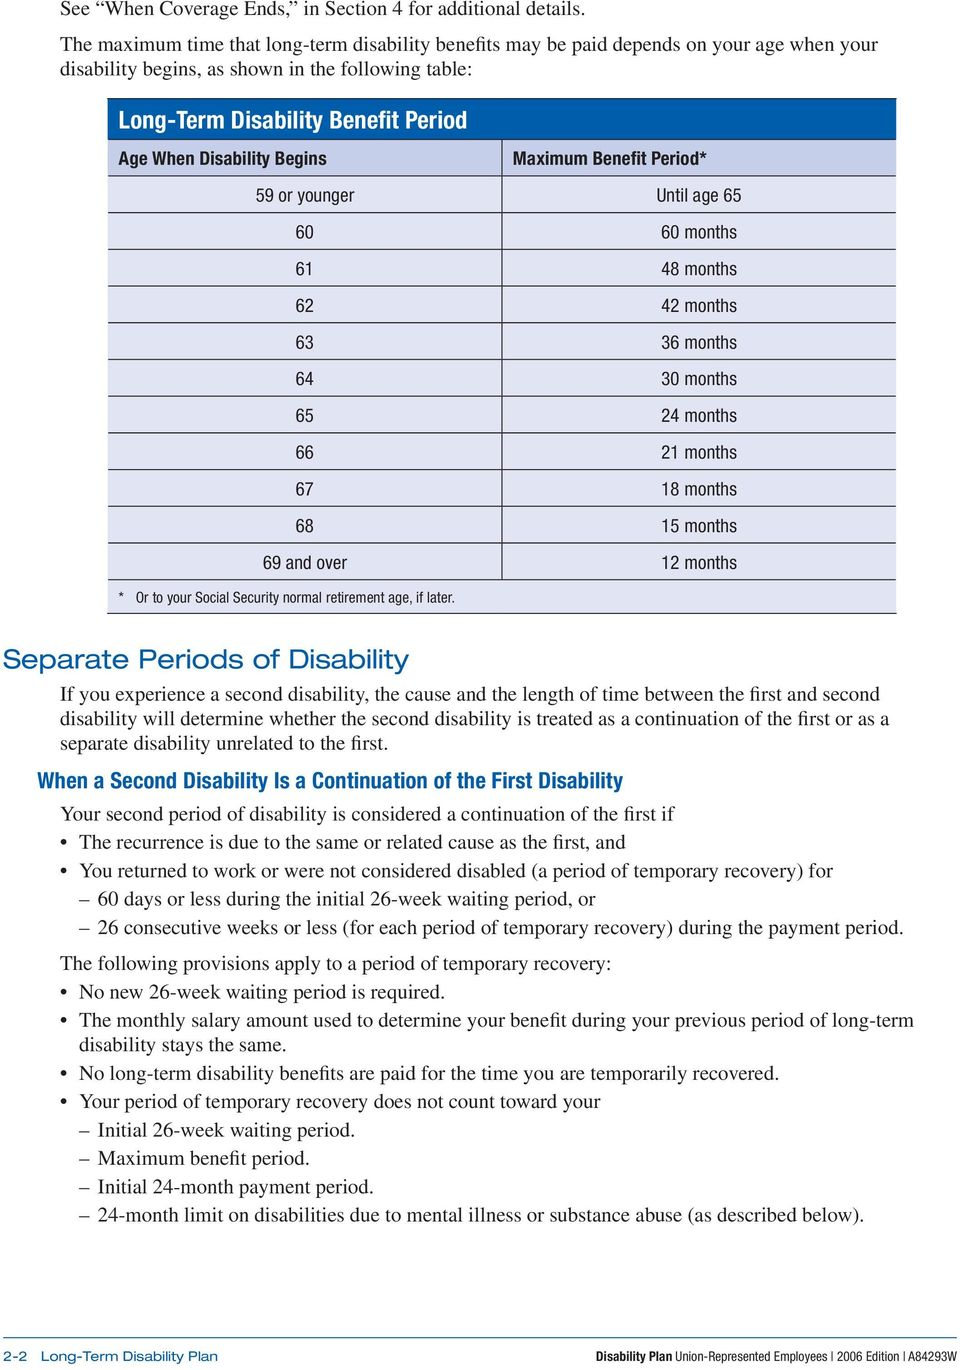 Disability Begins Maximum Benefit Period* 59 or younger Until age 65 60 60 months 61 48 months 62 42 months 63 36 months 64 30 months 65 24 months 66 21 months 67 18 months 68 15 months 69 and over